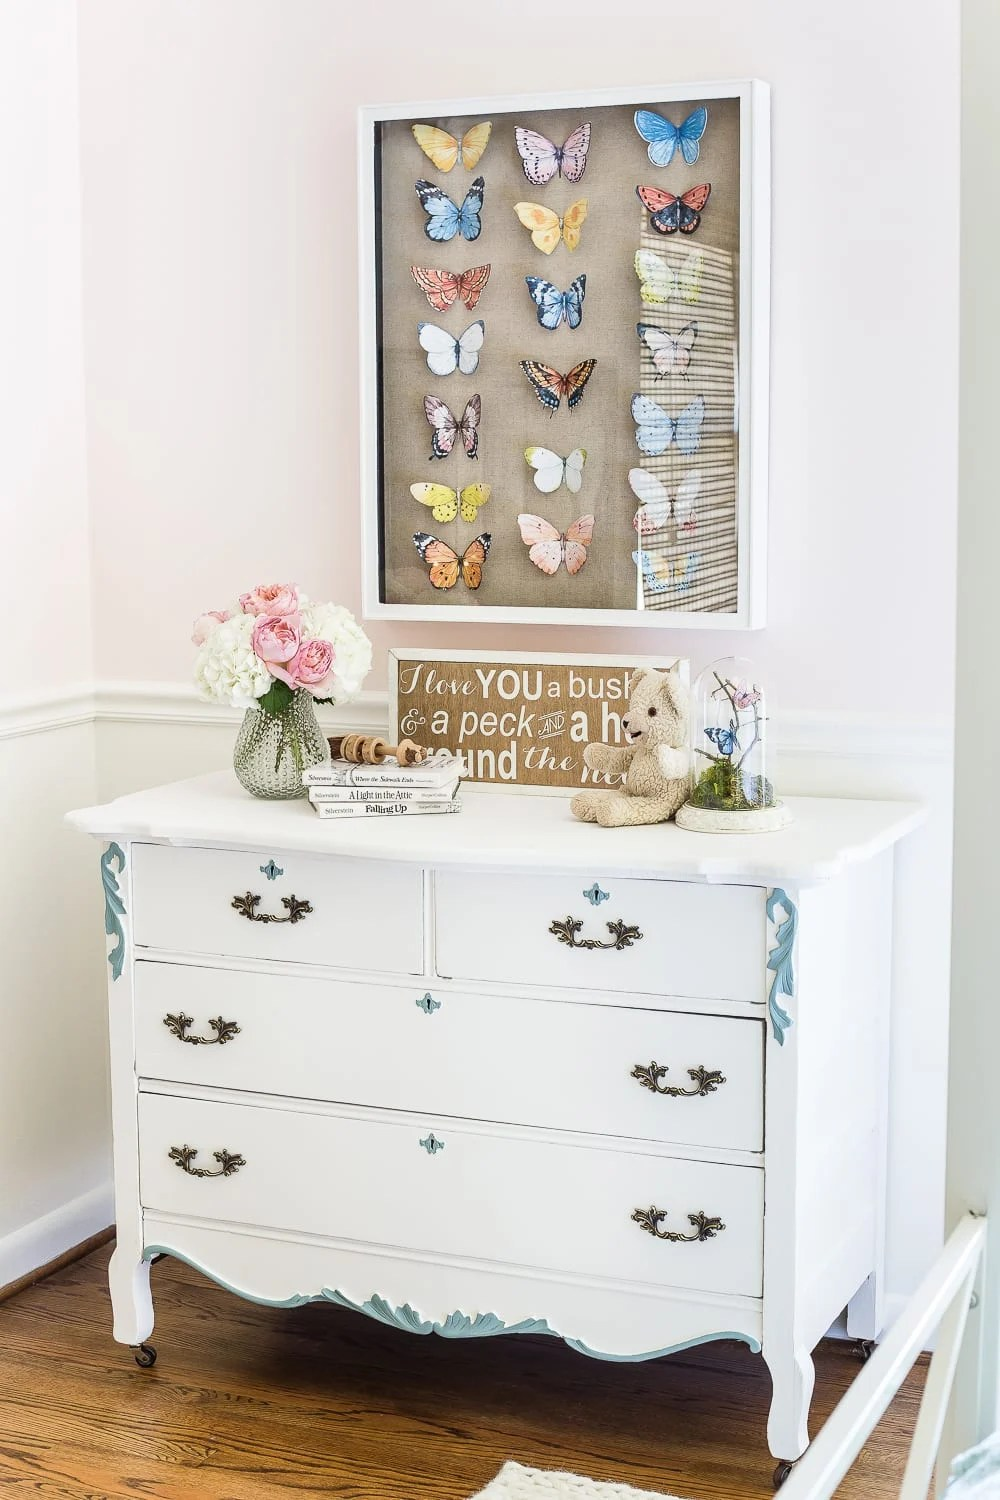 A French dresser gets a fresh, youthful white and aqua makeover with Fusion Mineral Paint Casement and Heirloom. #furnituremakeover #frenchdresser #kidsroom #kidsdecor #girlbedroom #furniture #fusionmineralpaint #furniturepaint